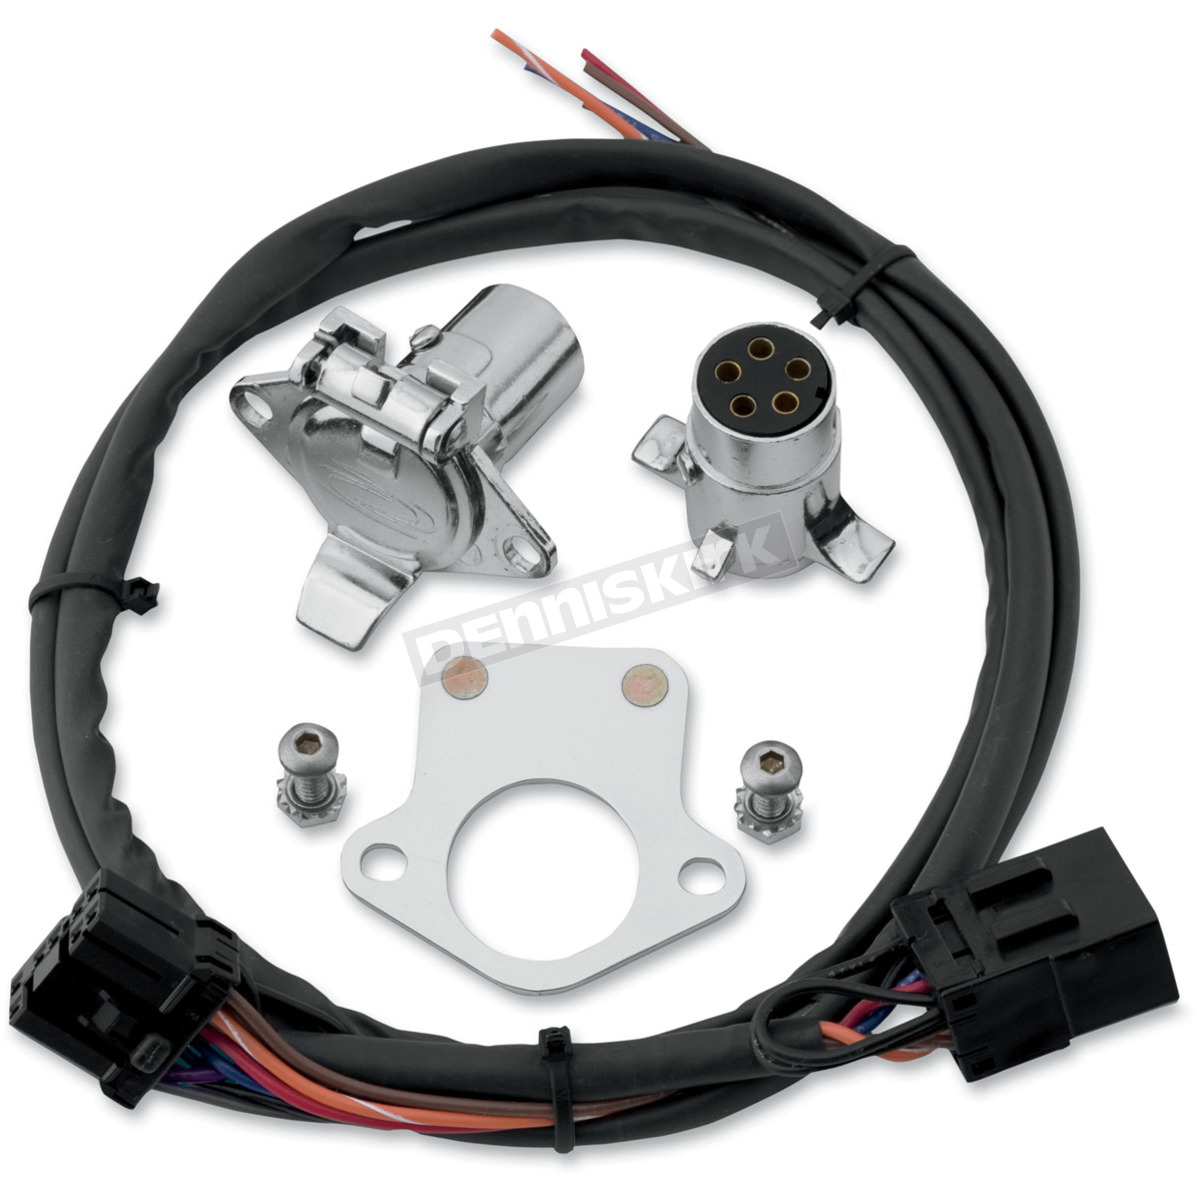 Khrome Werks 5-Pin Connector Kit w/Wiring Harness - 720585 Harley-Davidson  Motorcycle | Dennis KirkDennis Kirk